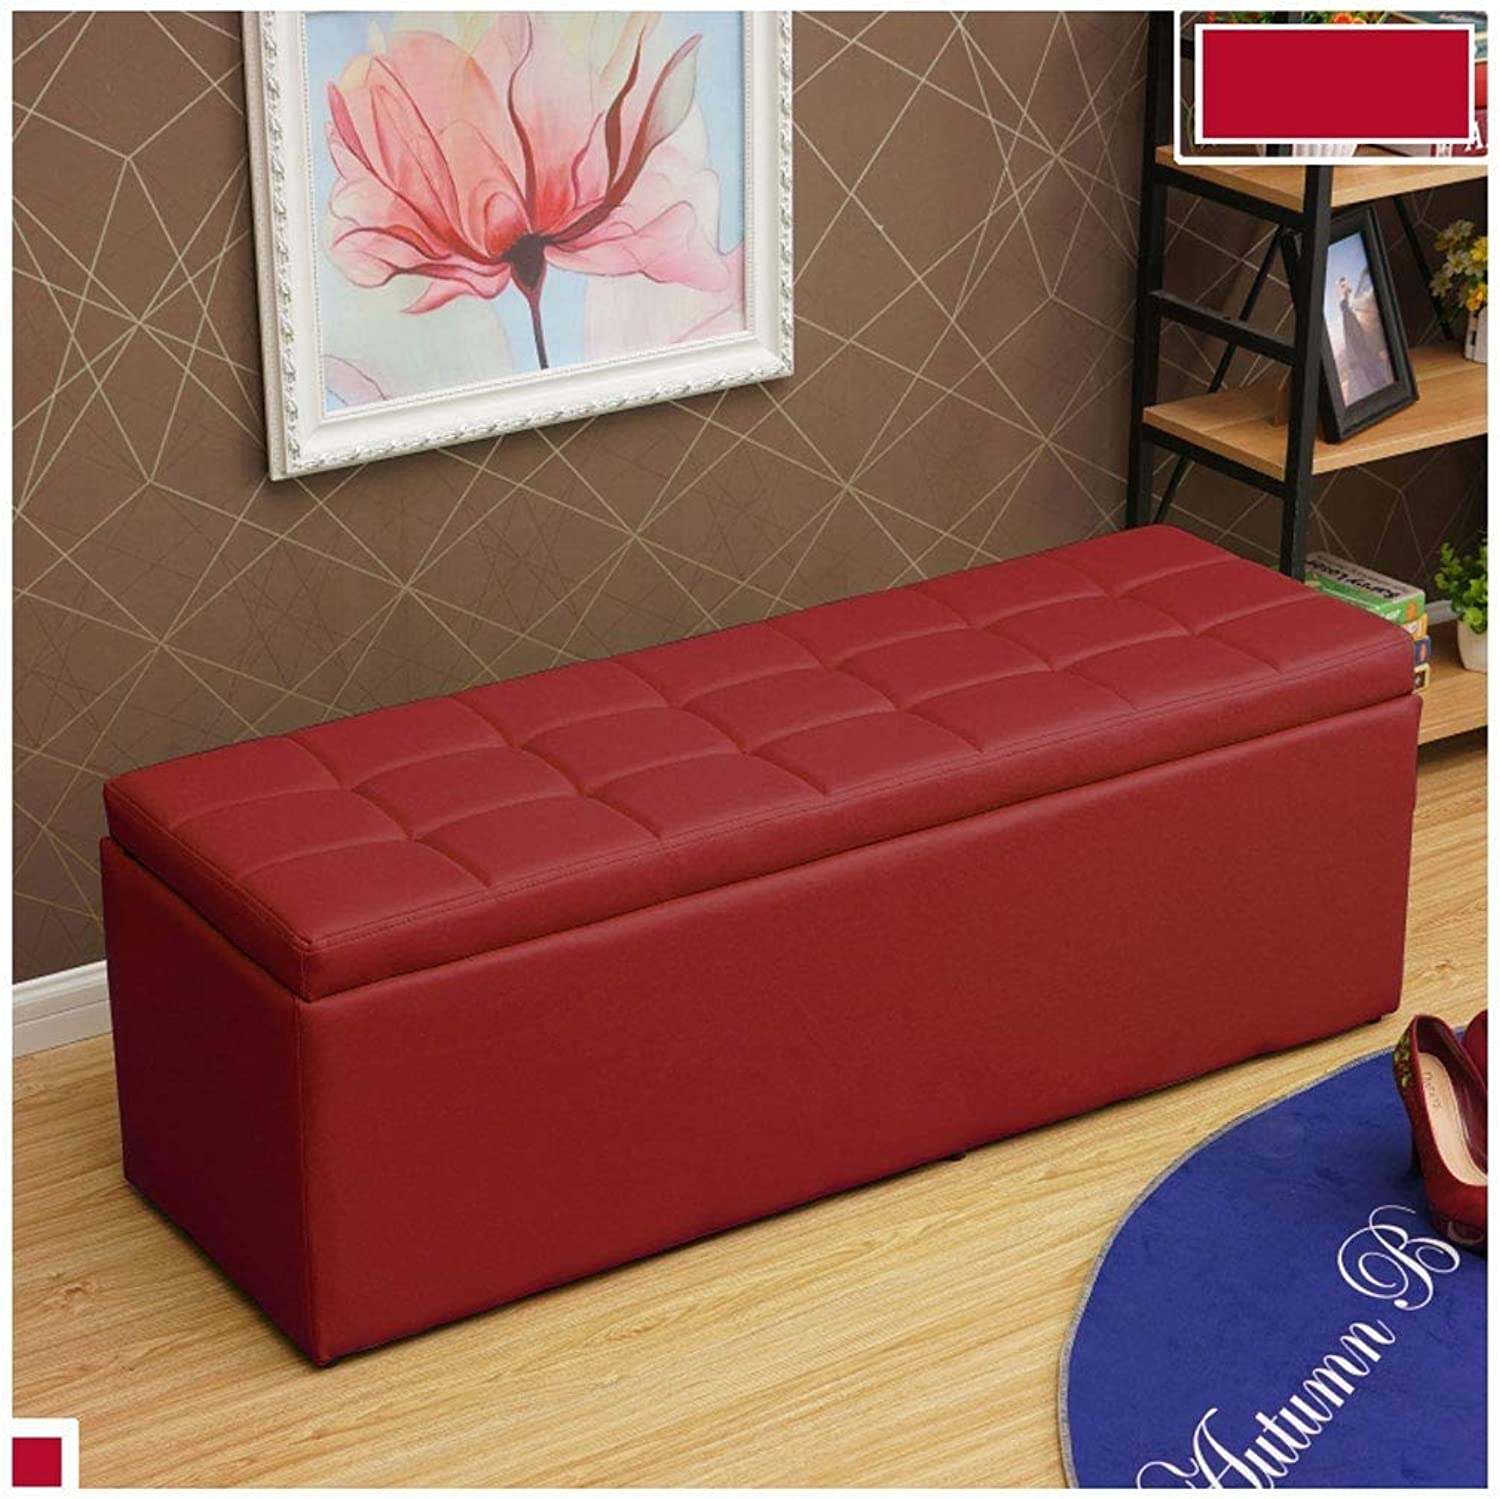 Footstool Fashion Storage Box Sofa Bench Saving Space Max Load 300kg Stool, Multiple Sizes colors Options (color   Weinred, Size   30  30  35cm)